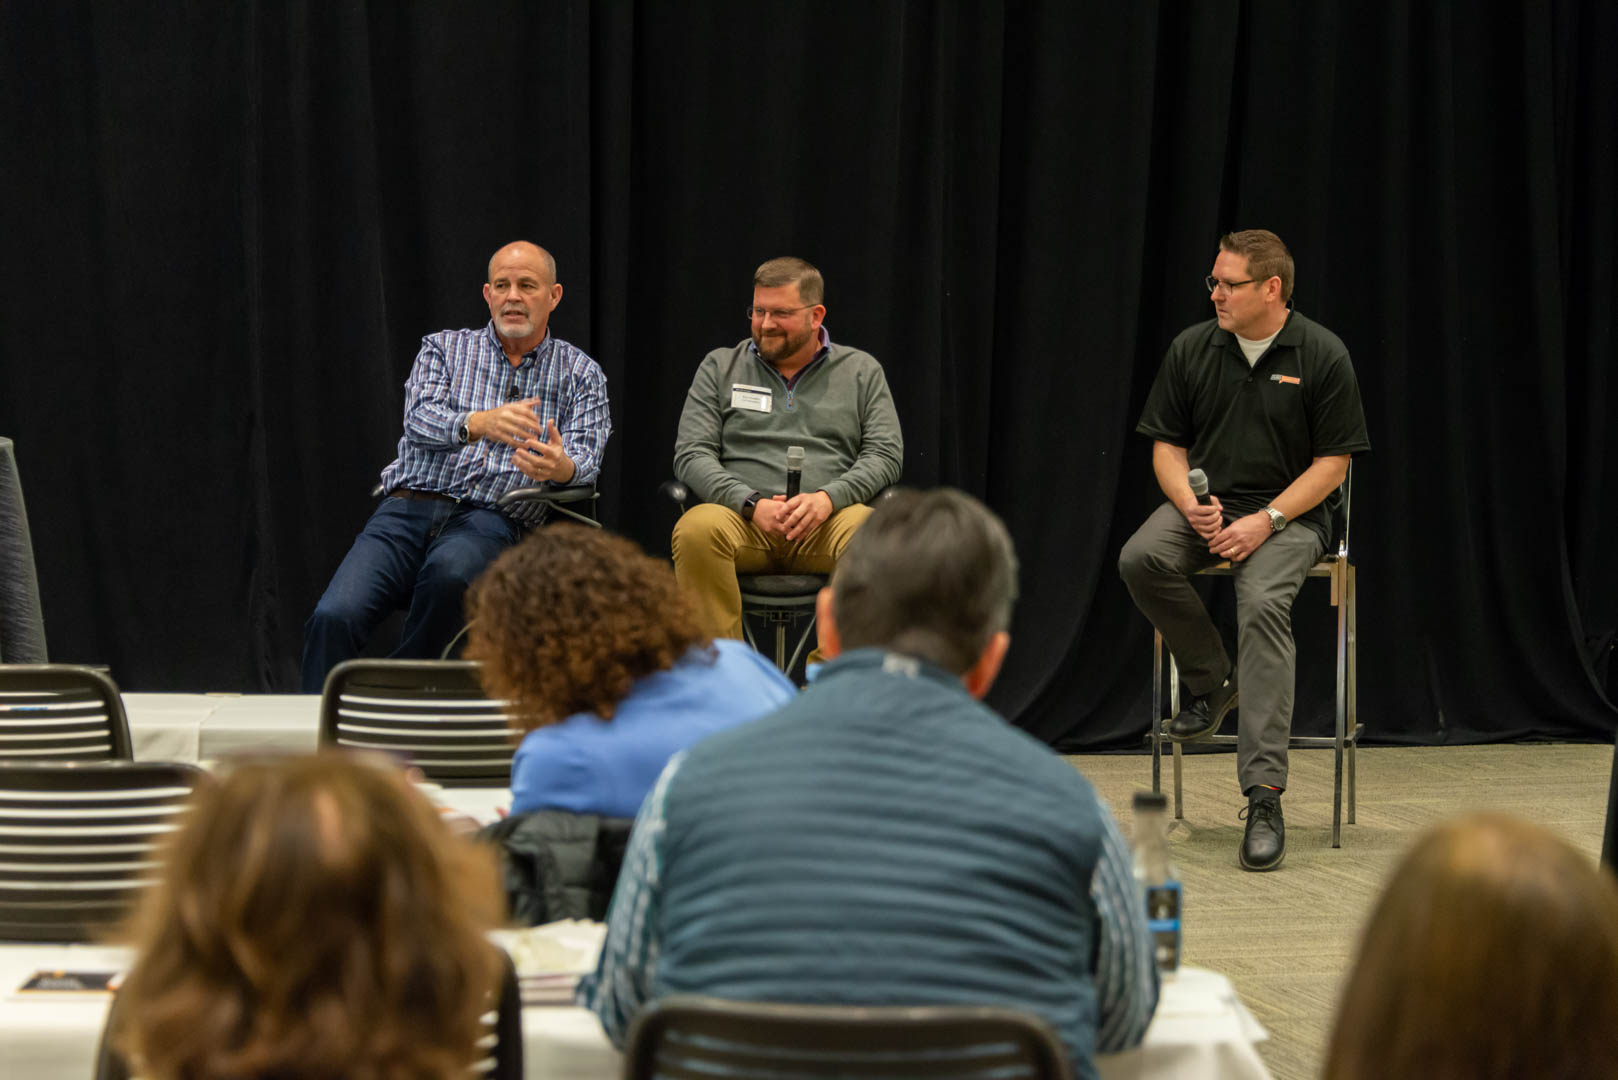 CU*Answers CEO Randy Karnes (left) is joined on stage by CU*Answers VP of Mobile Technologies Group Ken Vaughn (center) and VP of Marketing Services & Creative Director David Damstra.